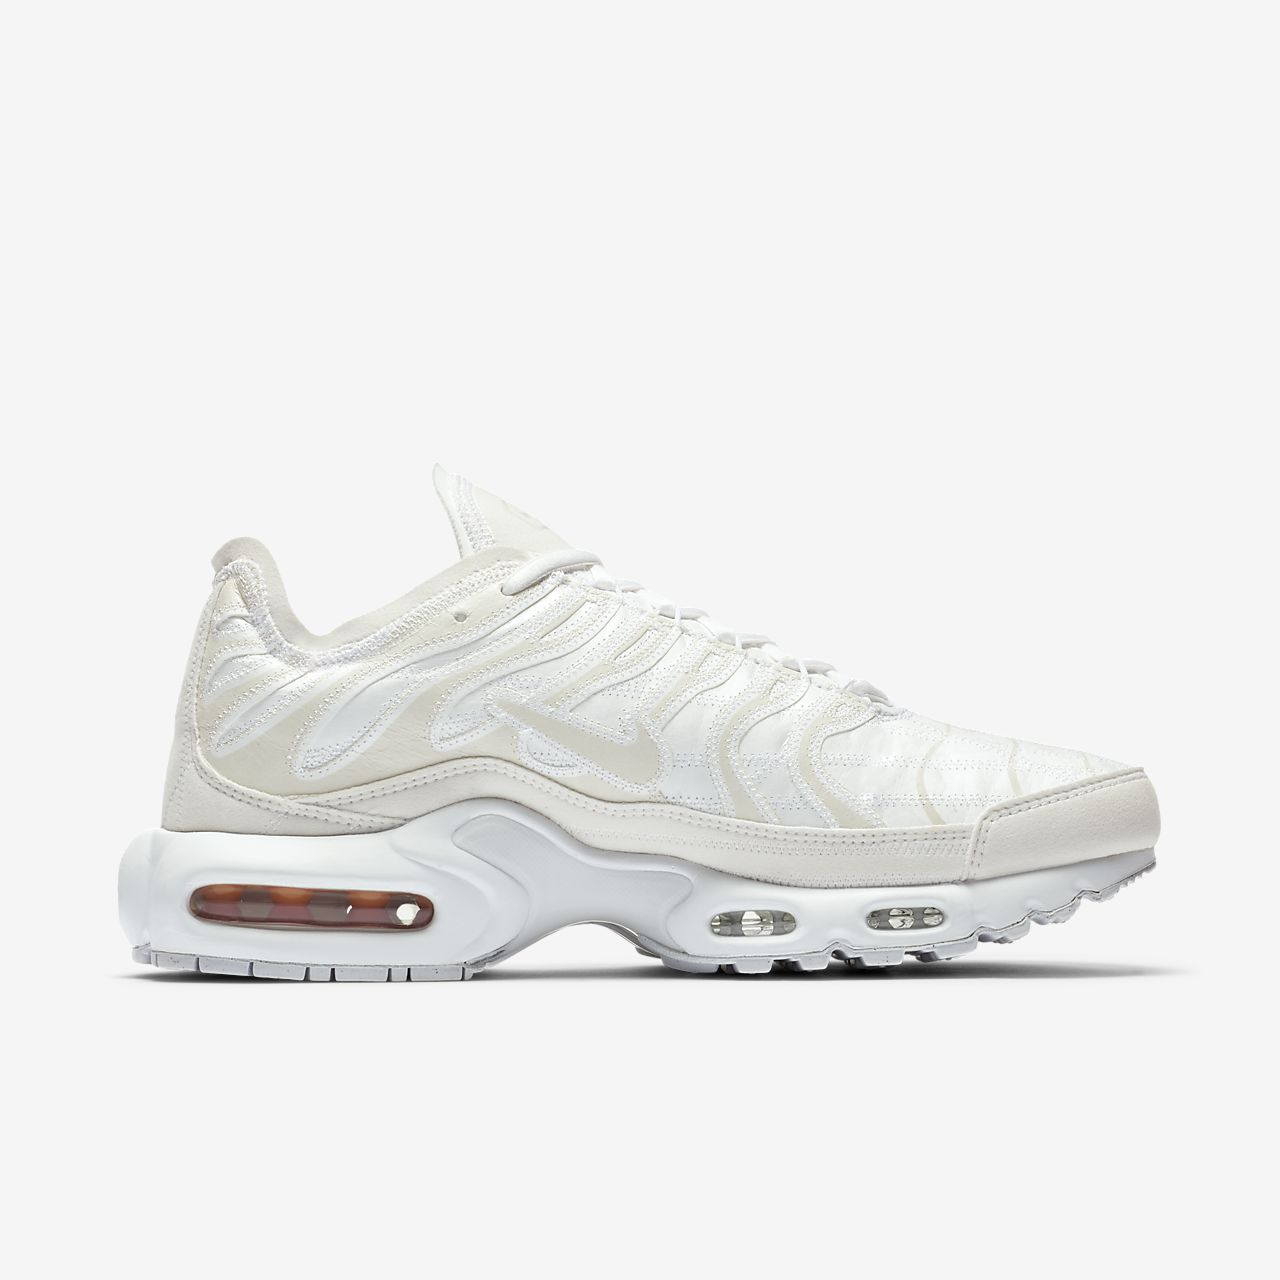 closer at on feet at 2018 shoes Nike Air Max Plus Deconstructed Men's Shoe